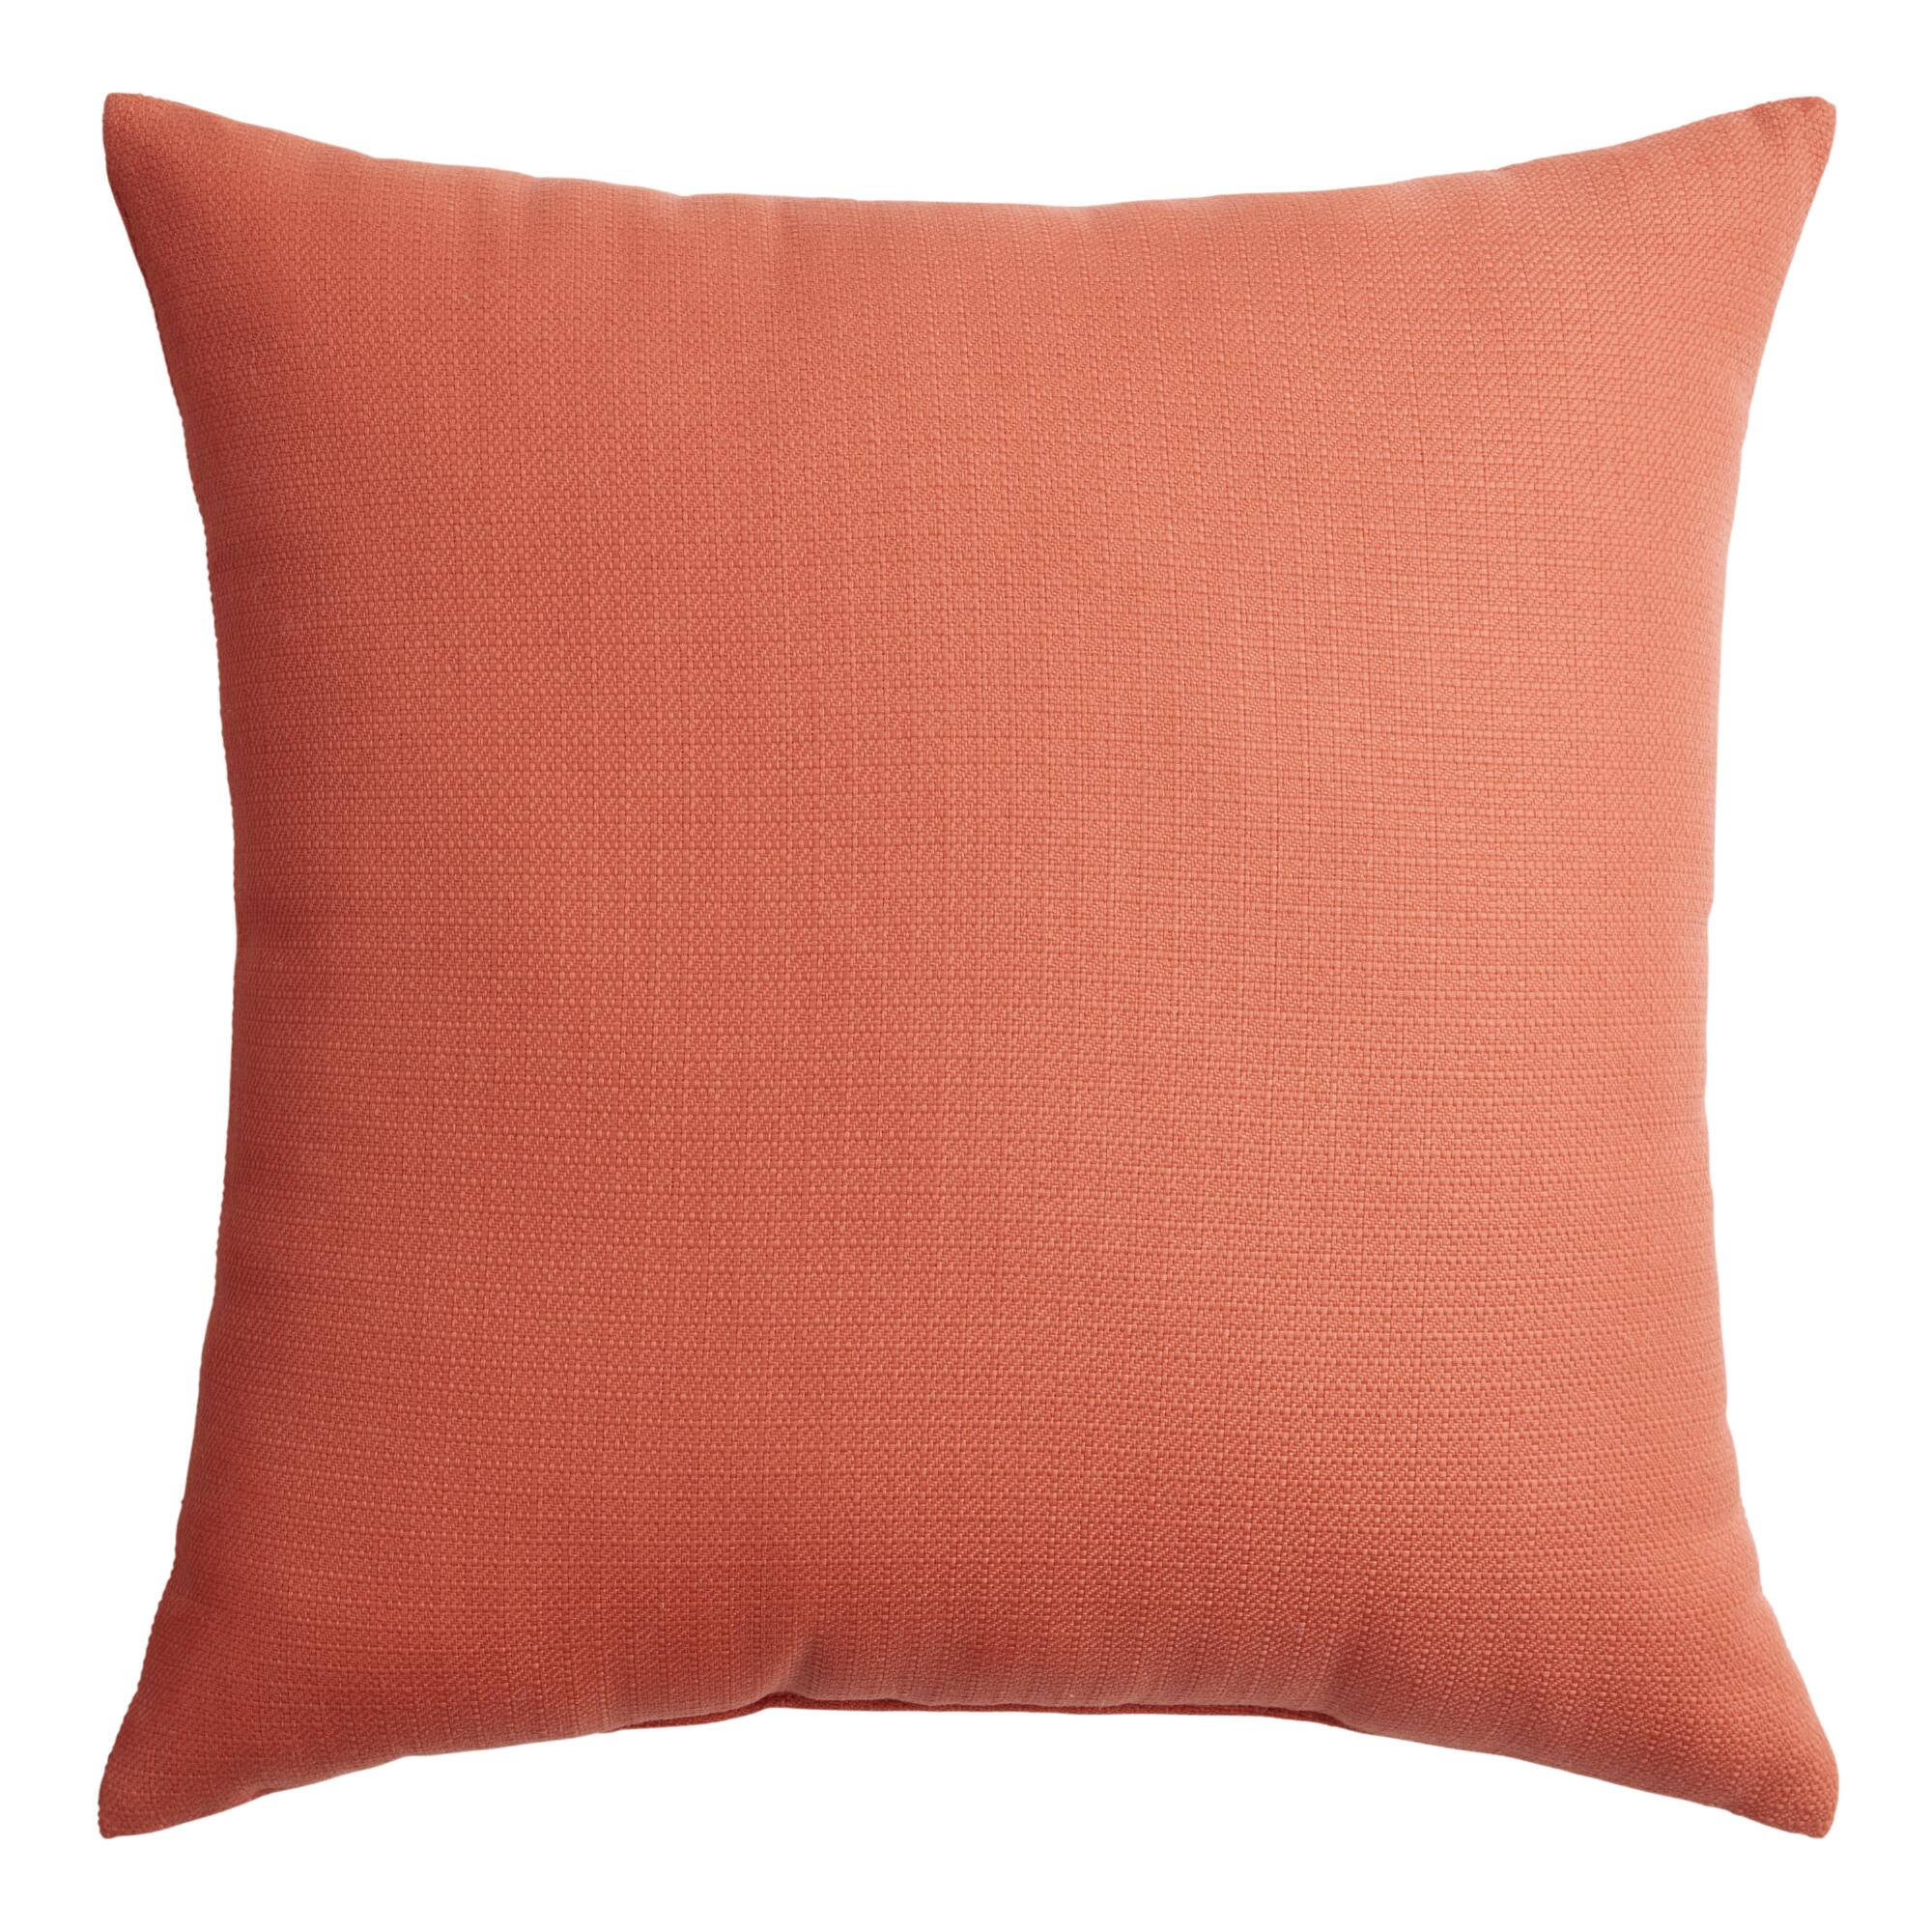 Solid Outdoor Throw Pillow World Market